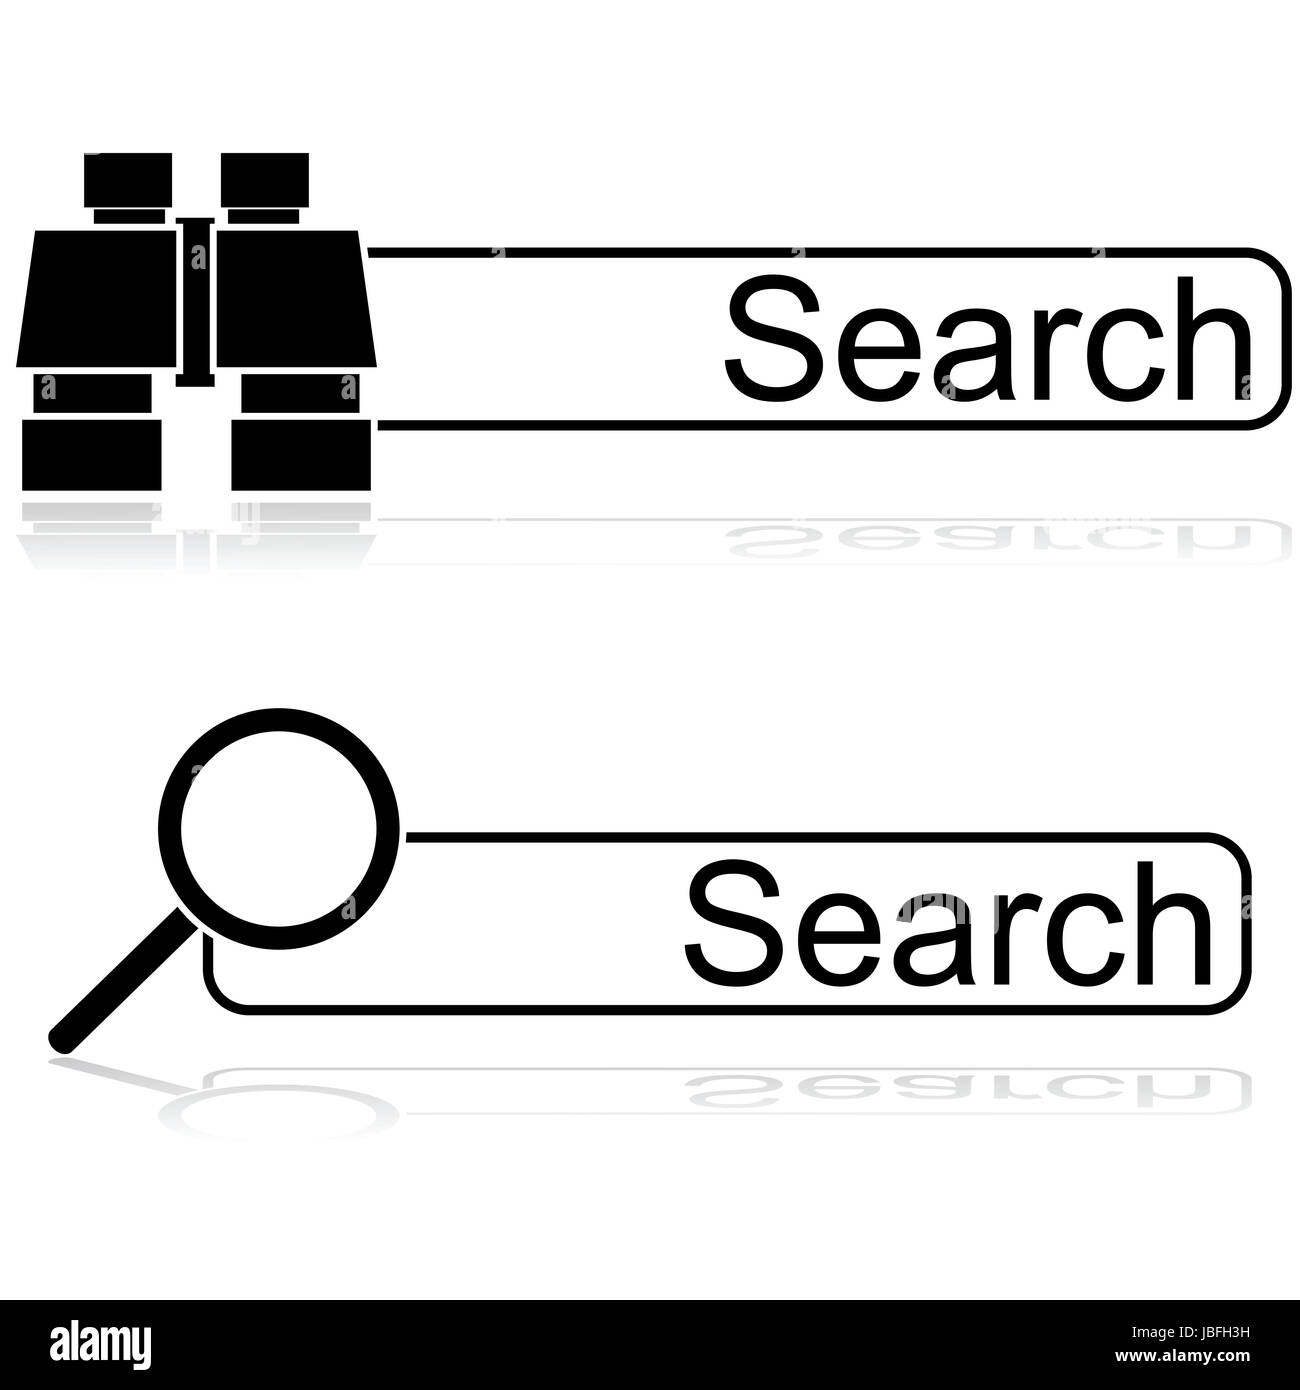 Icon illustration showing a couple of options for search bars, one with a pair of binoculars and one with a magnifying - Stock Image